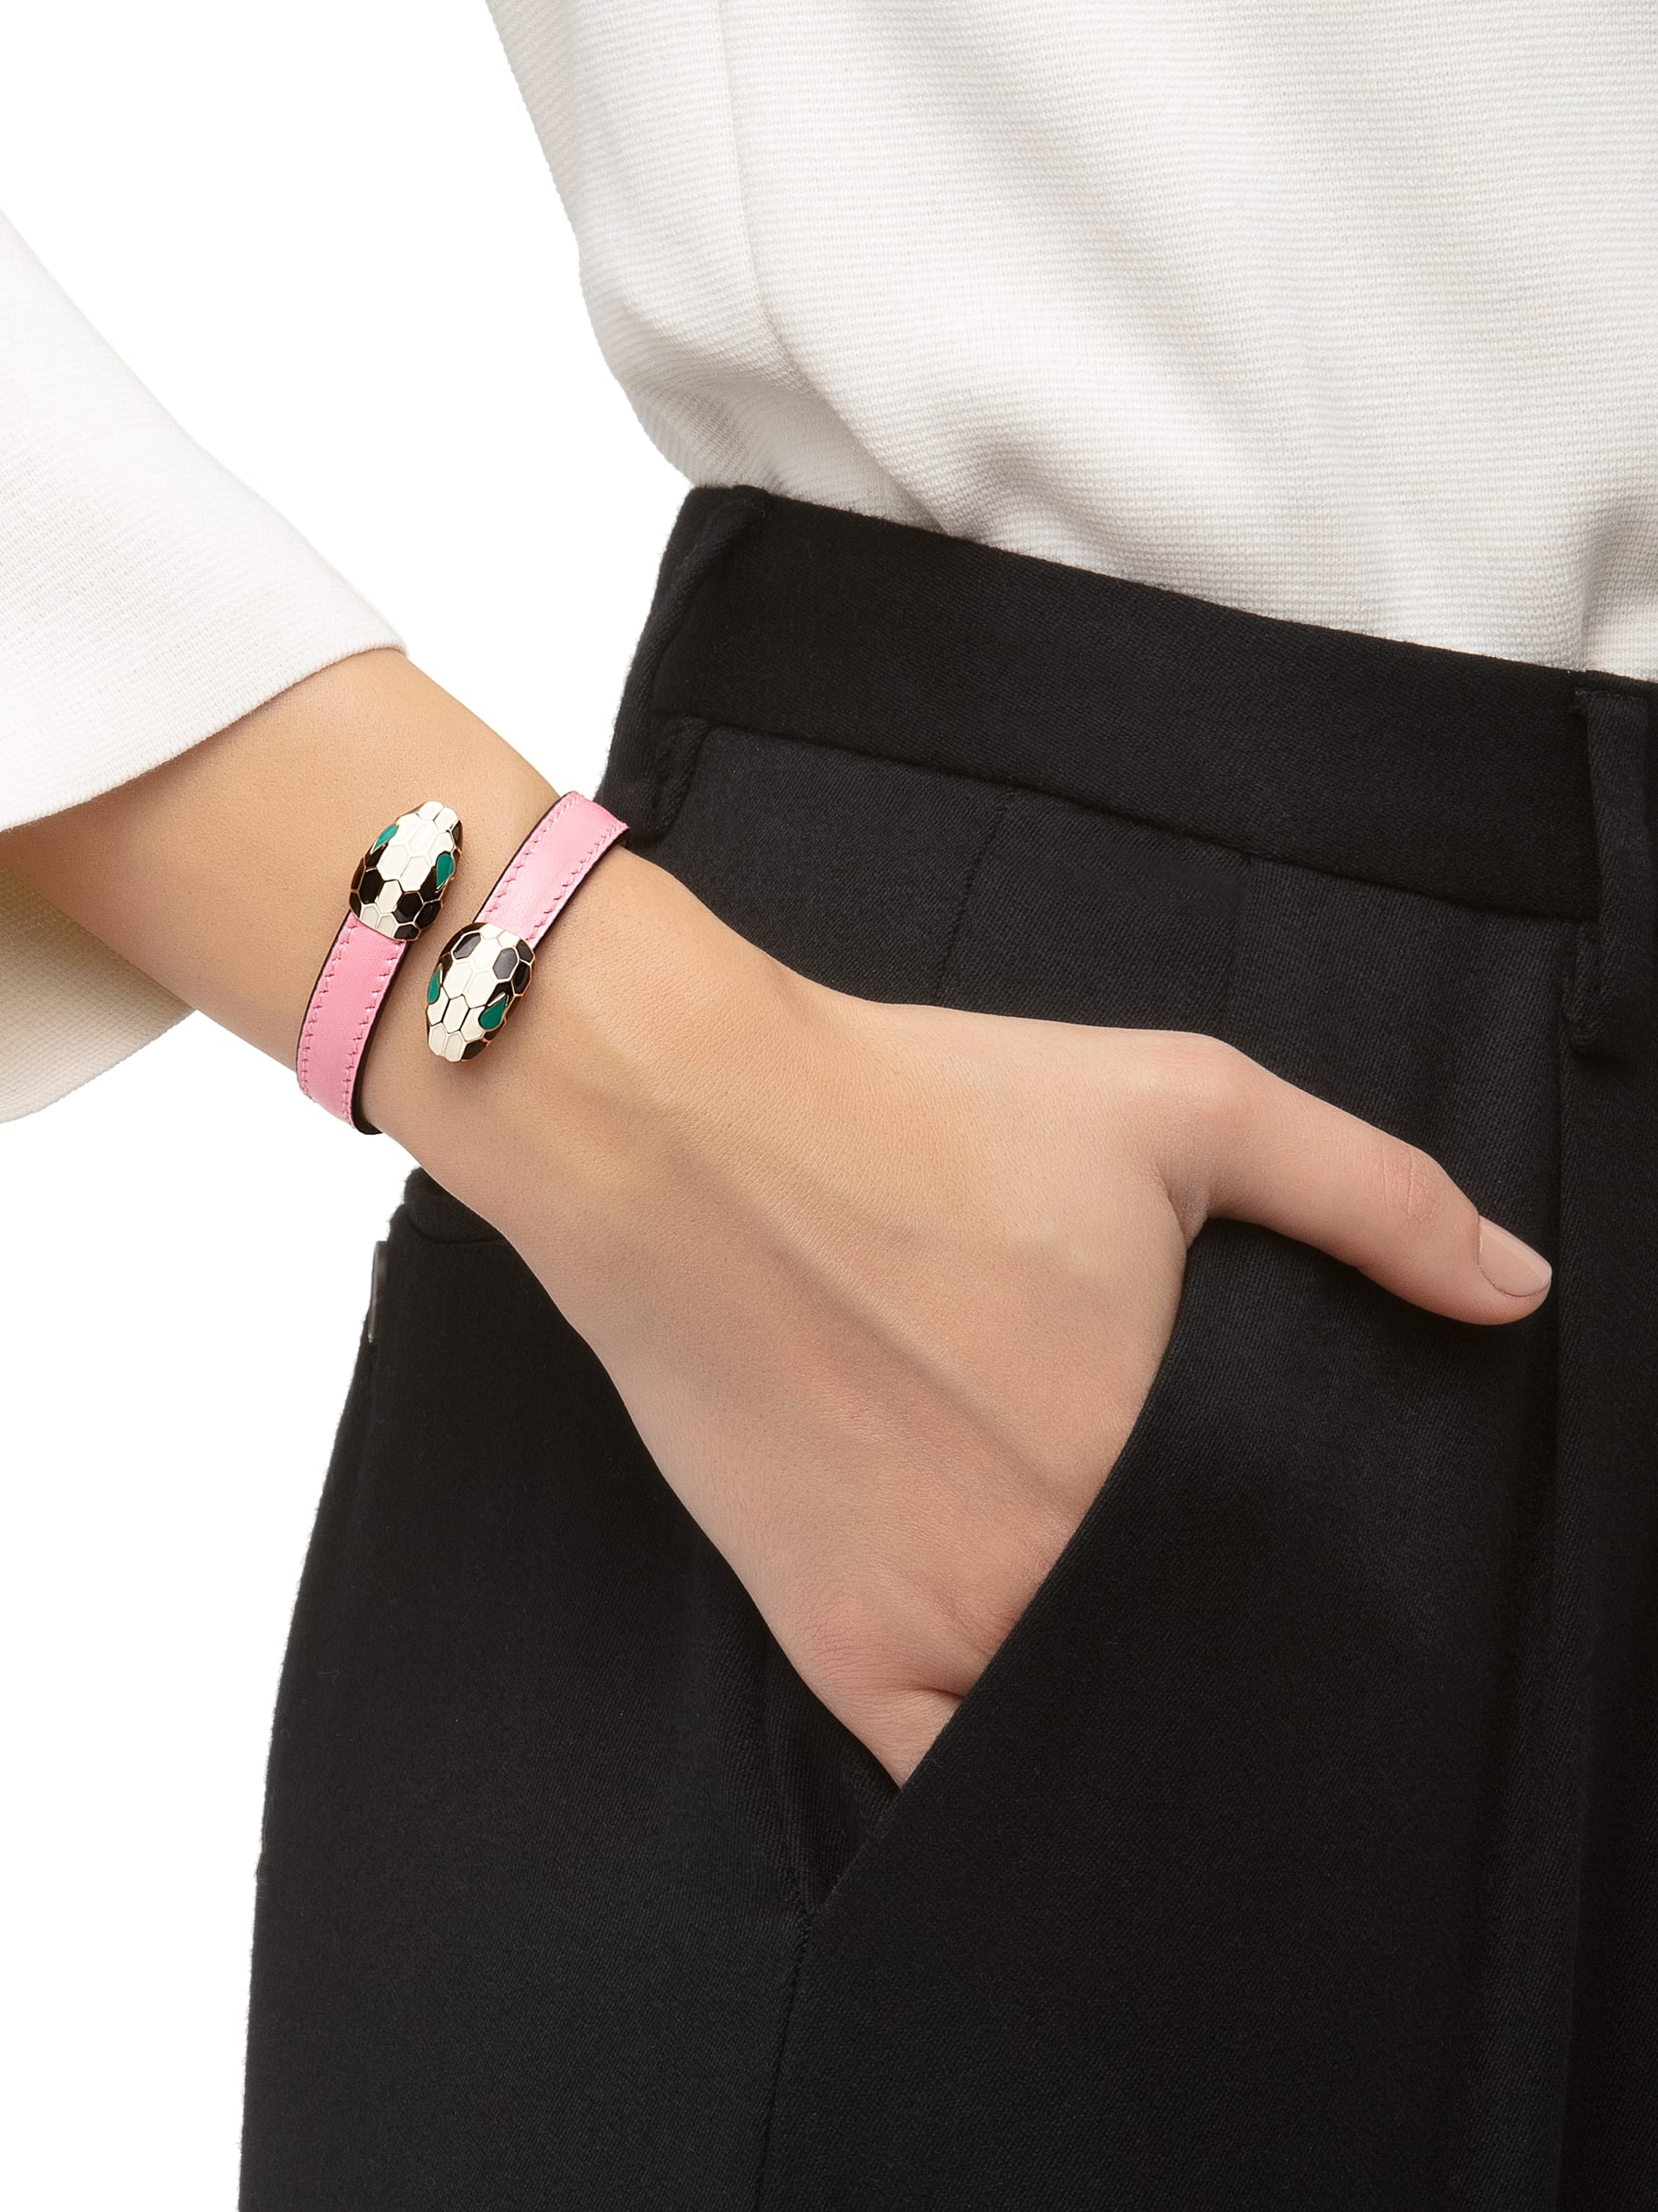 Serpenti Forever soft bangle bracelet in candy quartz calf leather, with brass light gold plated hardware. Iconic contraire snakehead décor in black and white enamel, with green enamel eyes SerpSoftContr-CL-CQ image 2